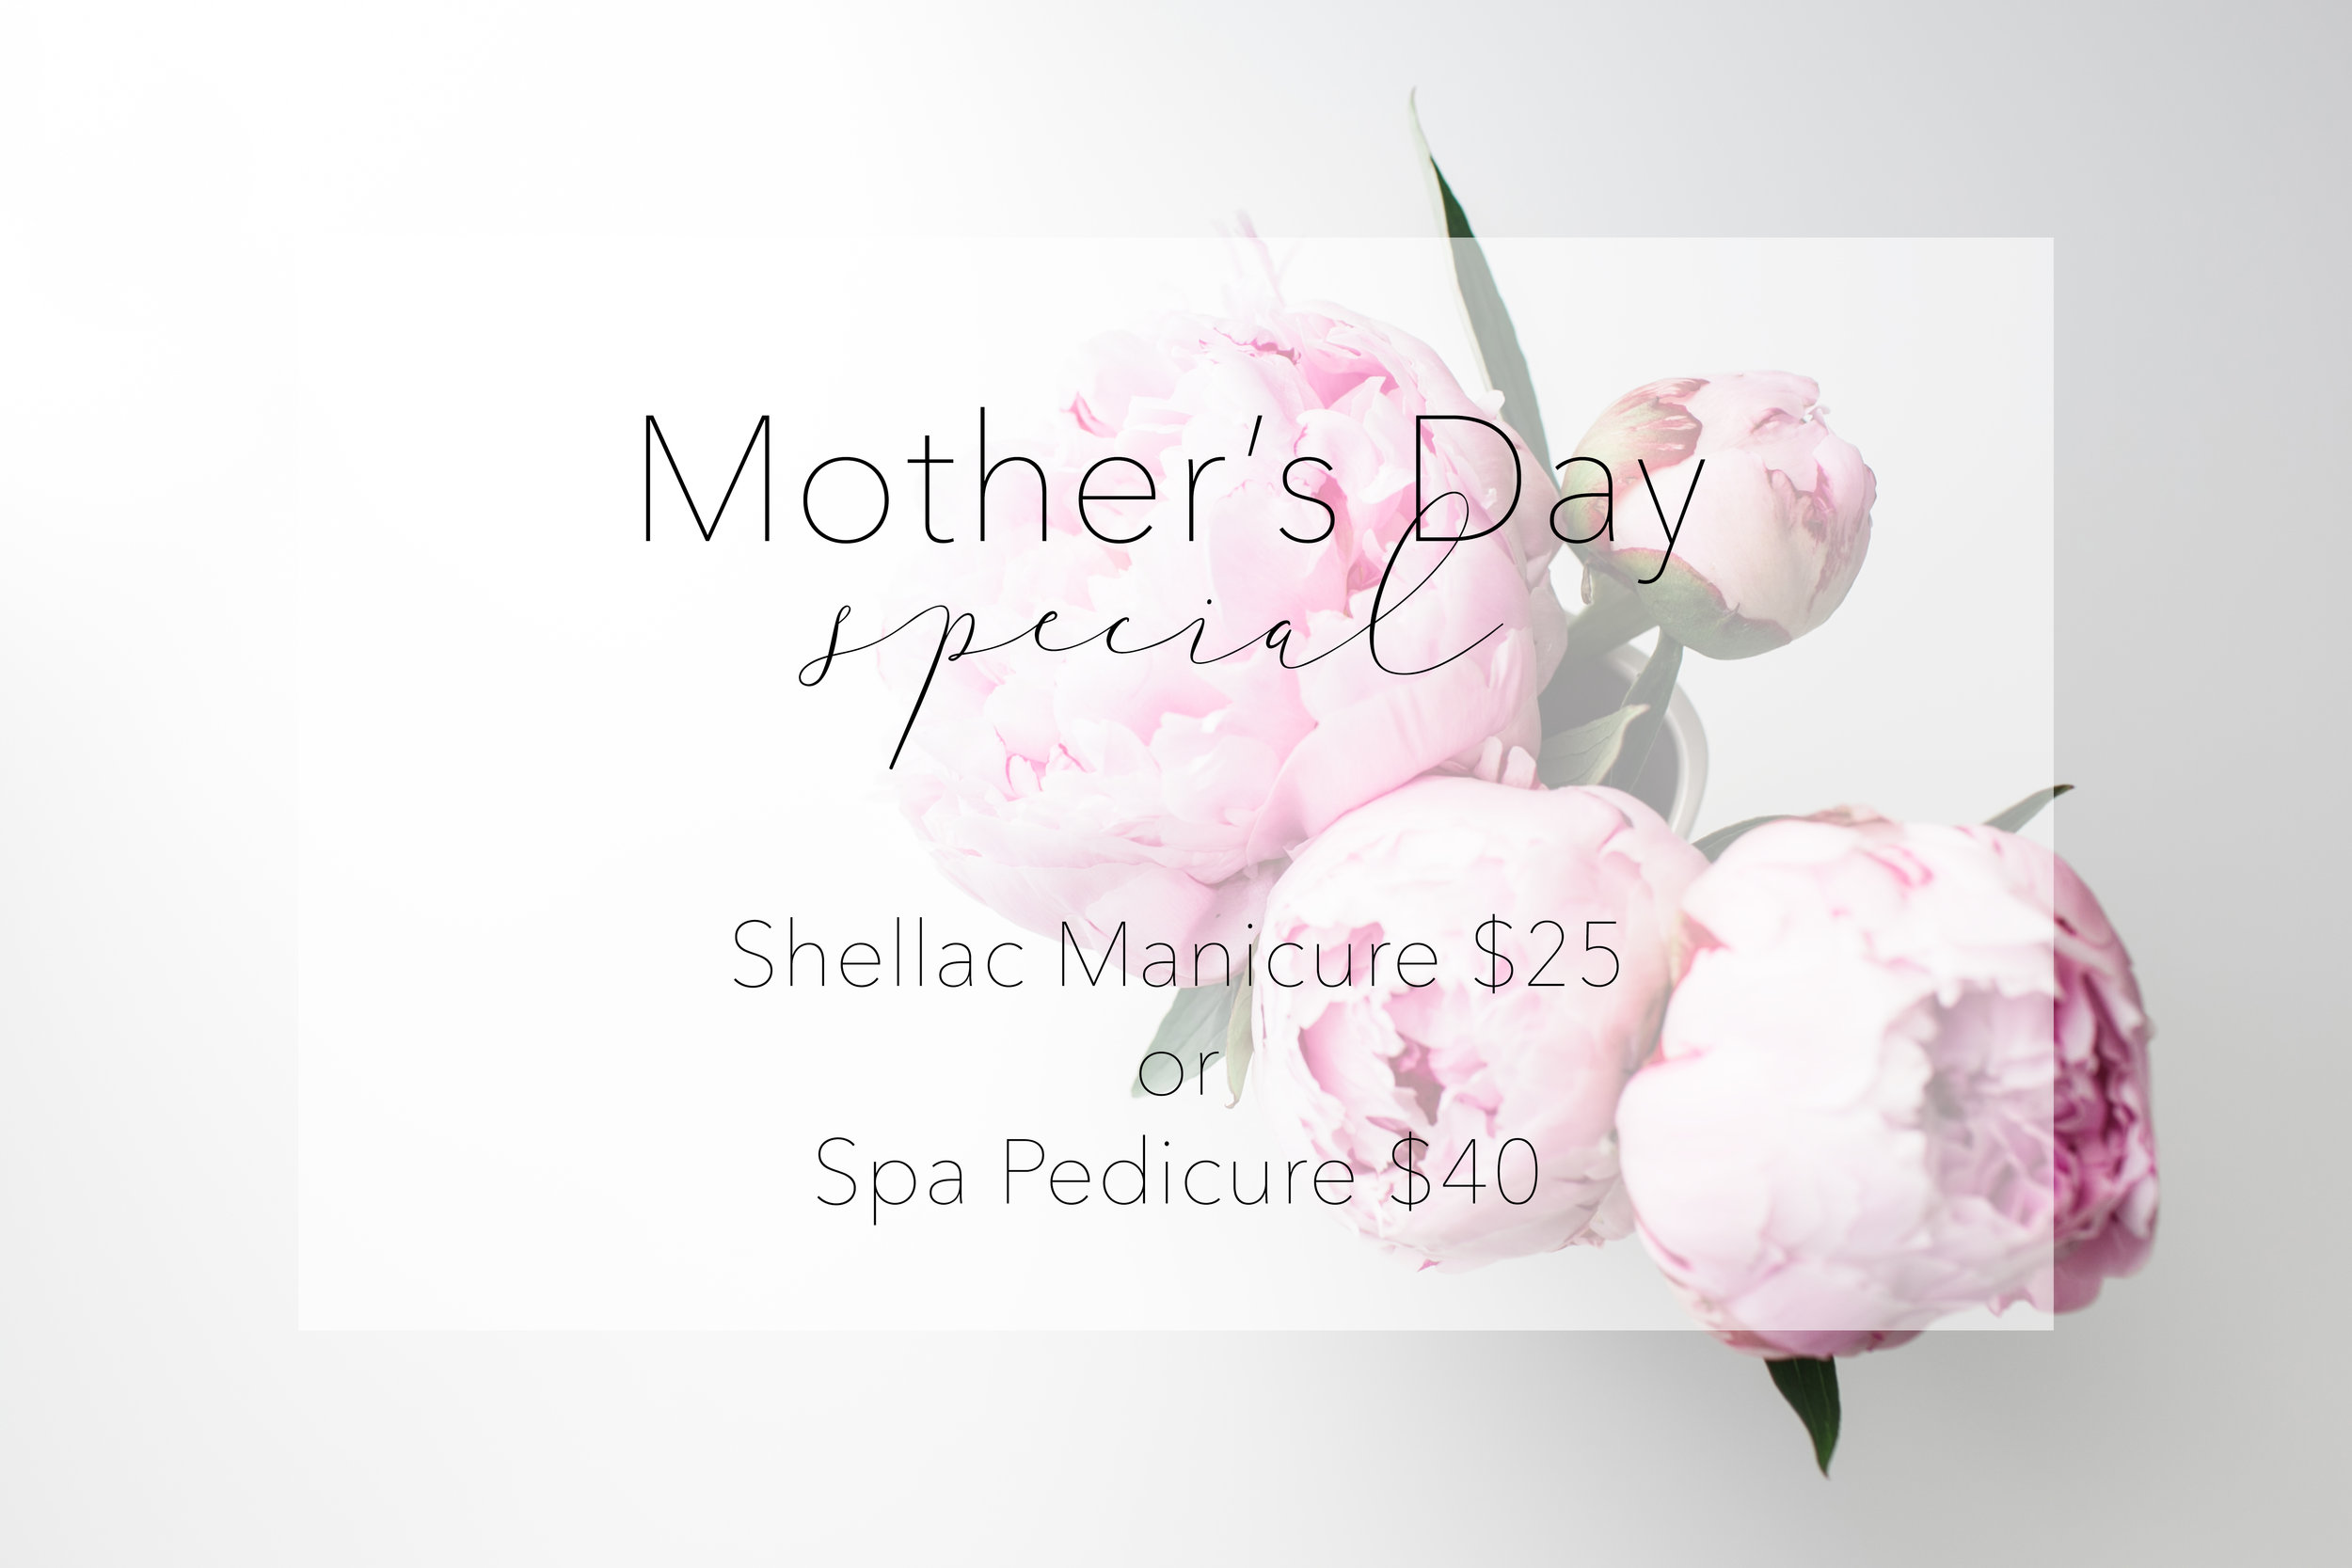 Mothers Day Special2.jpg